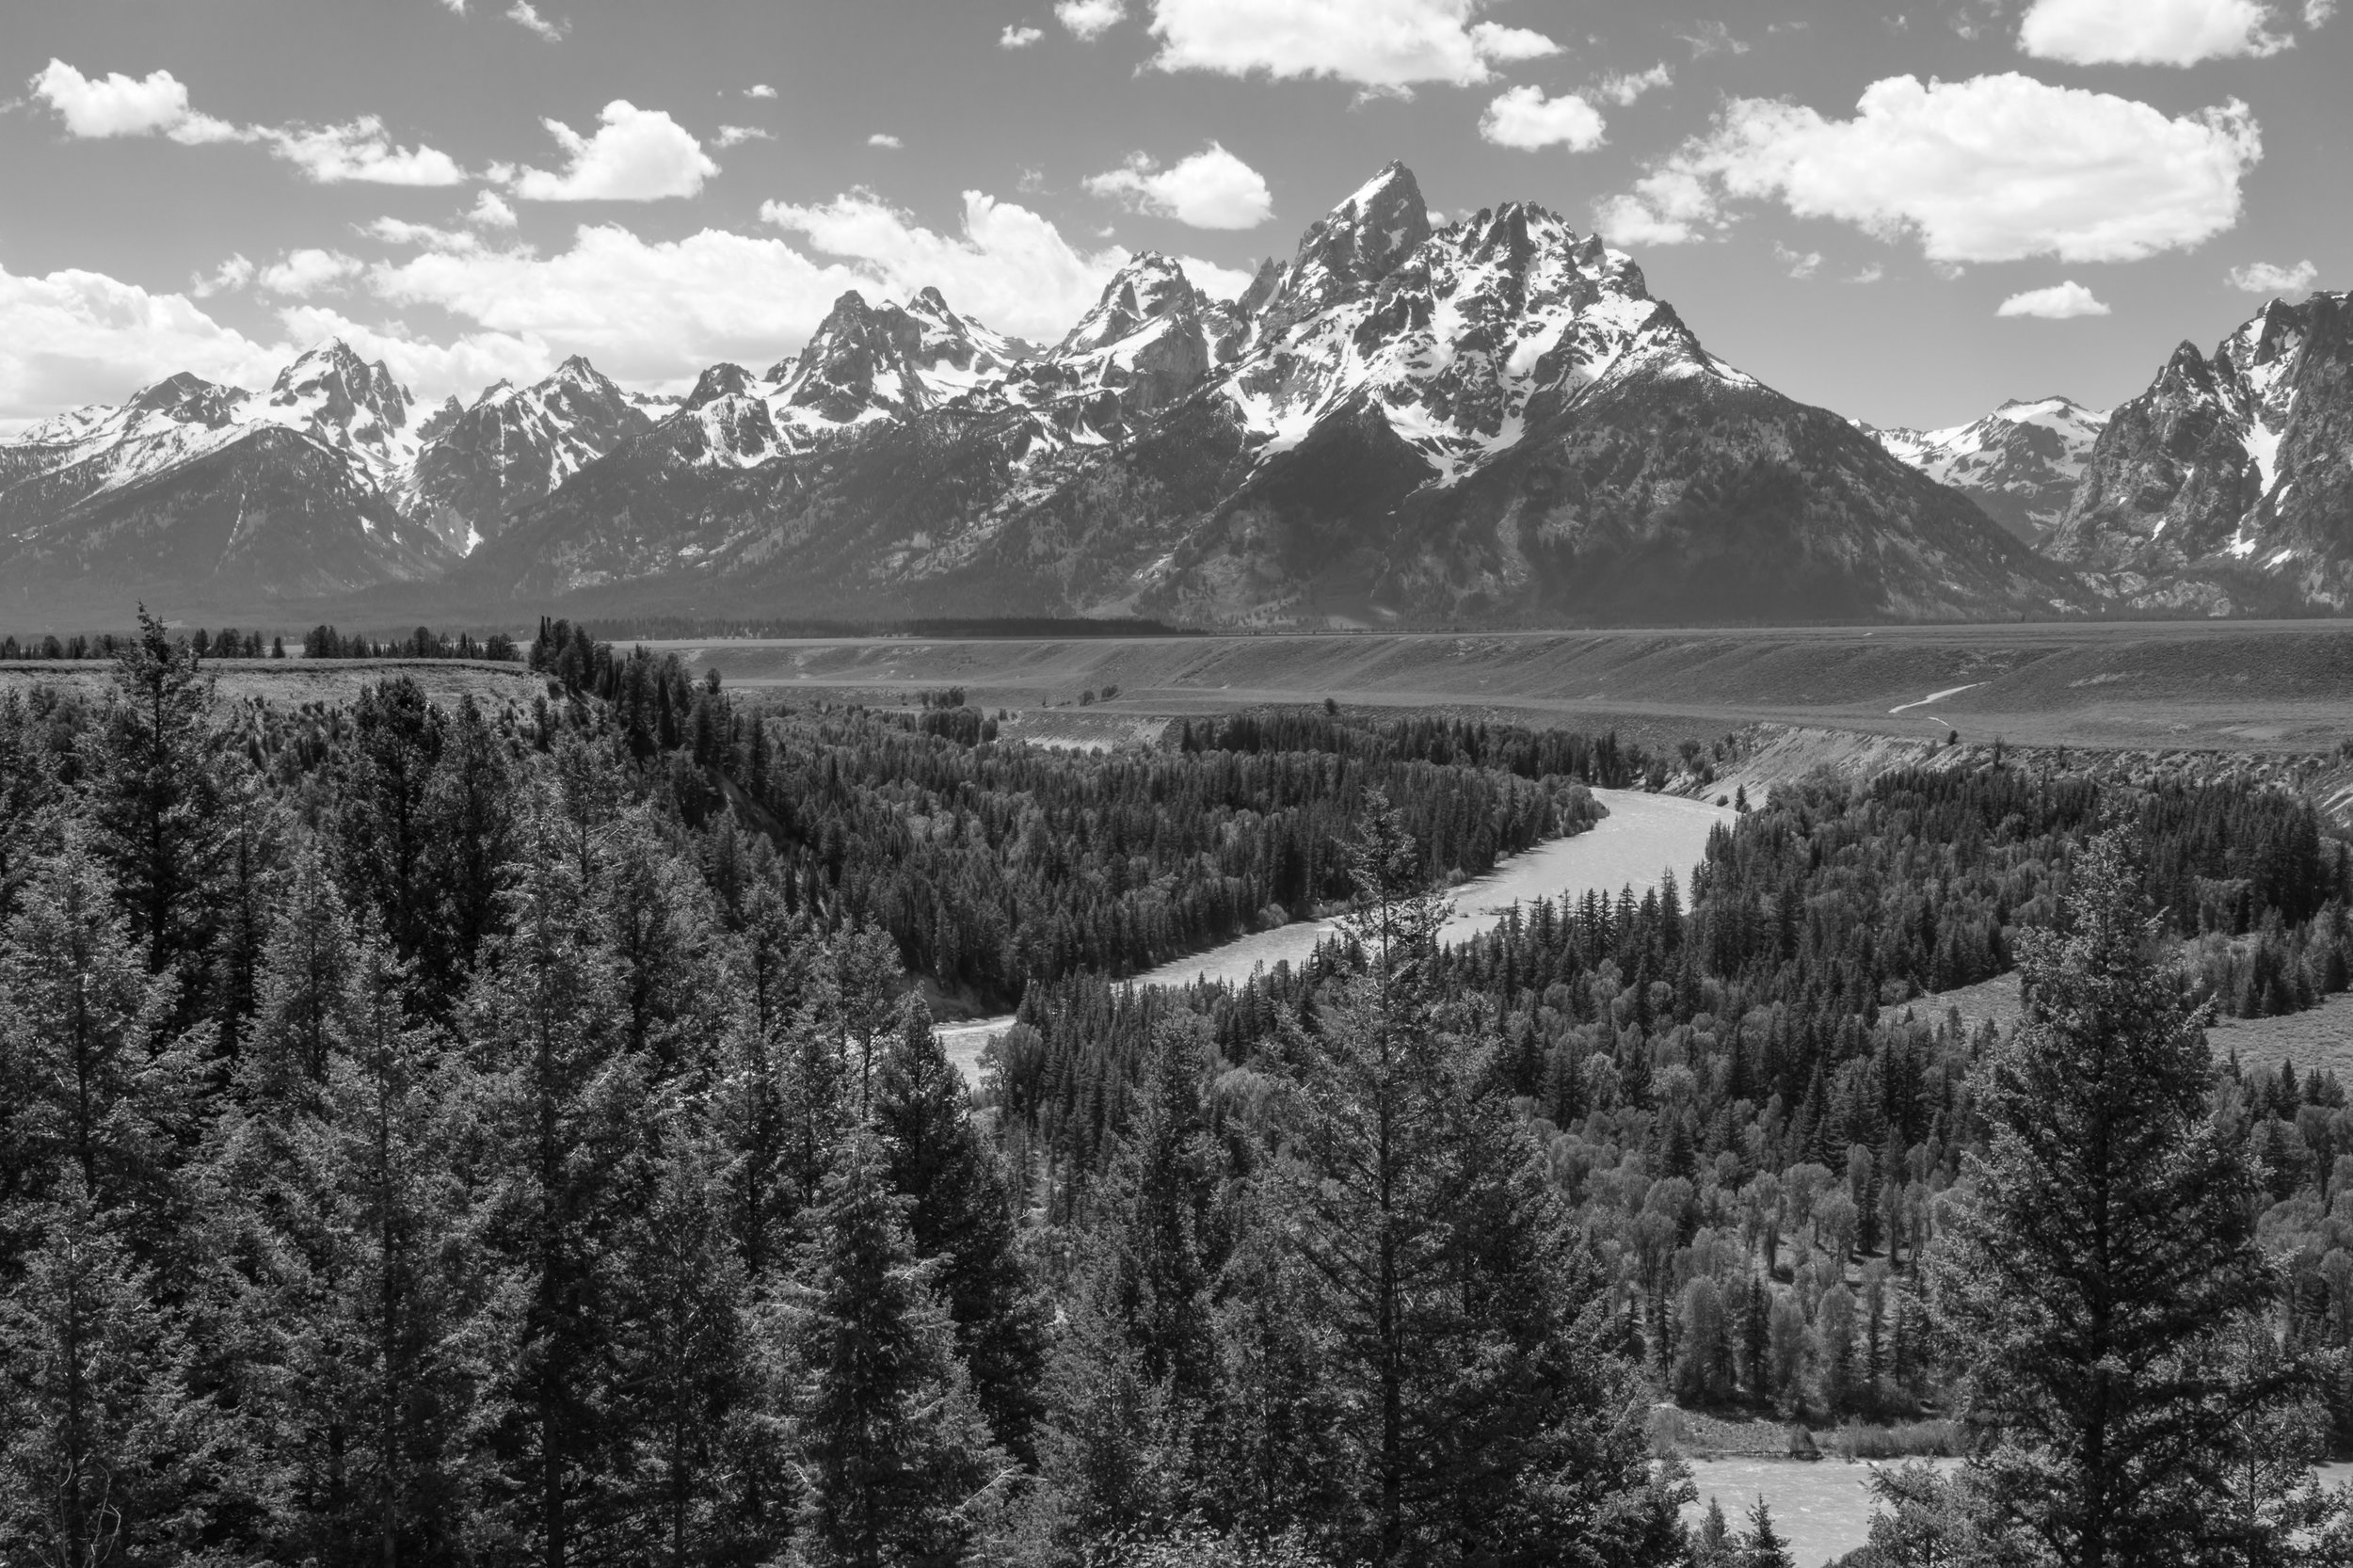 SNAKE RIVER OVERLOOK, IMAGE # 8489